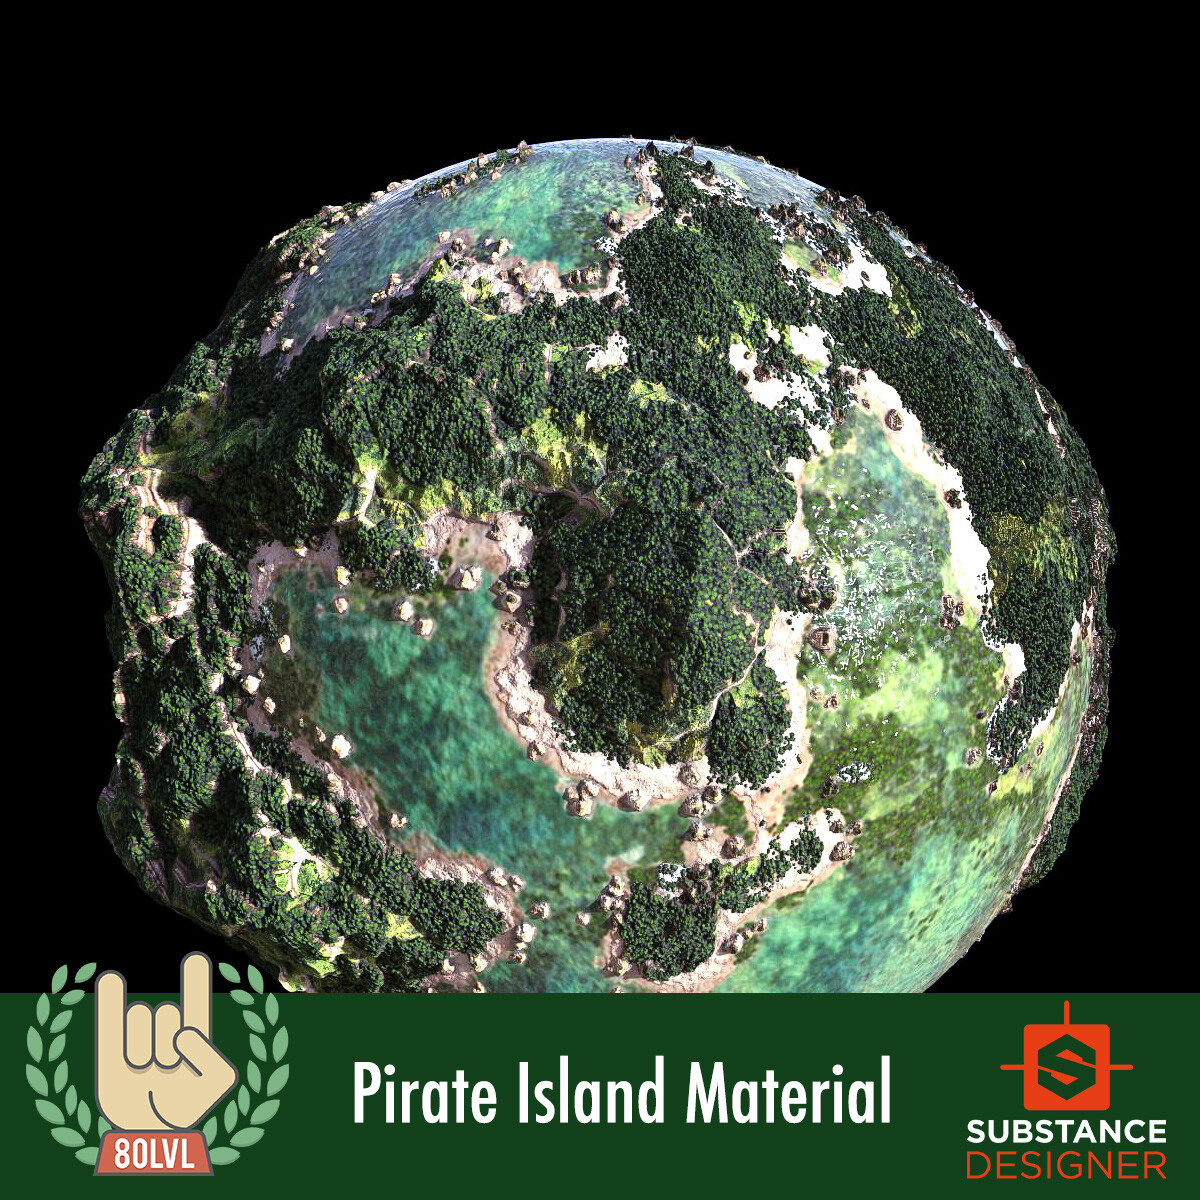 Pirate Island Material - 100% Substance Designer